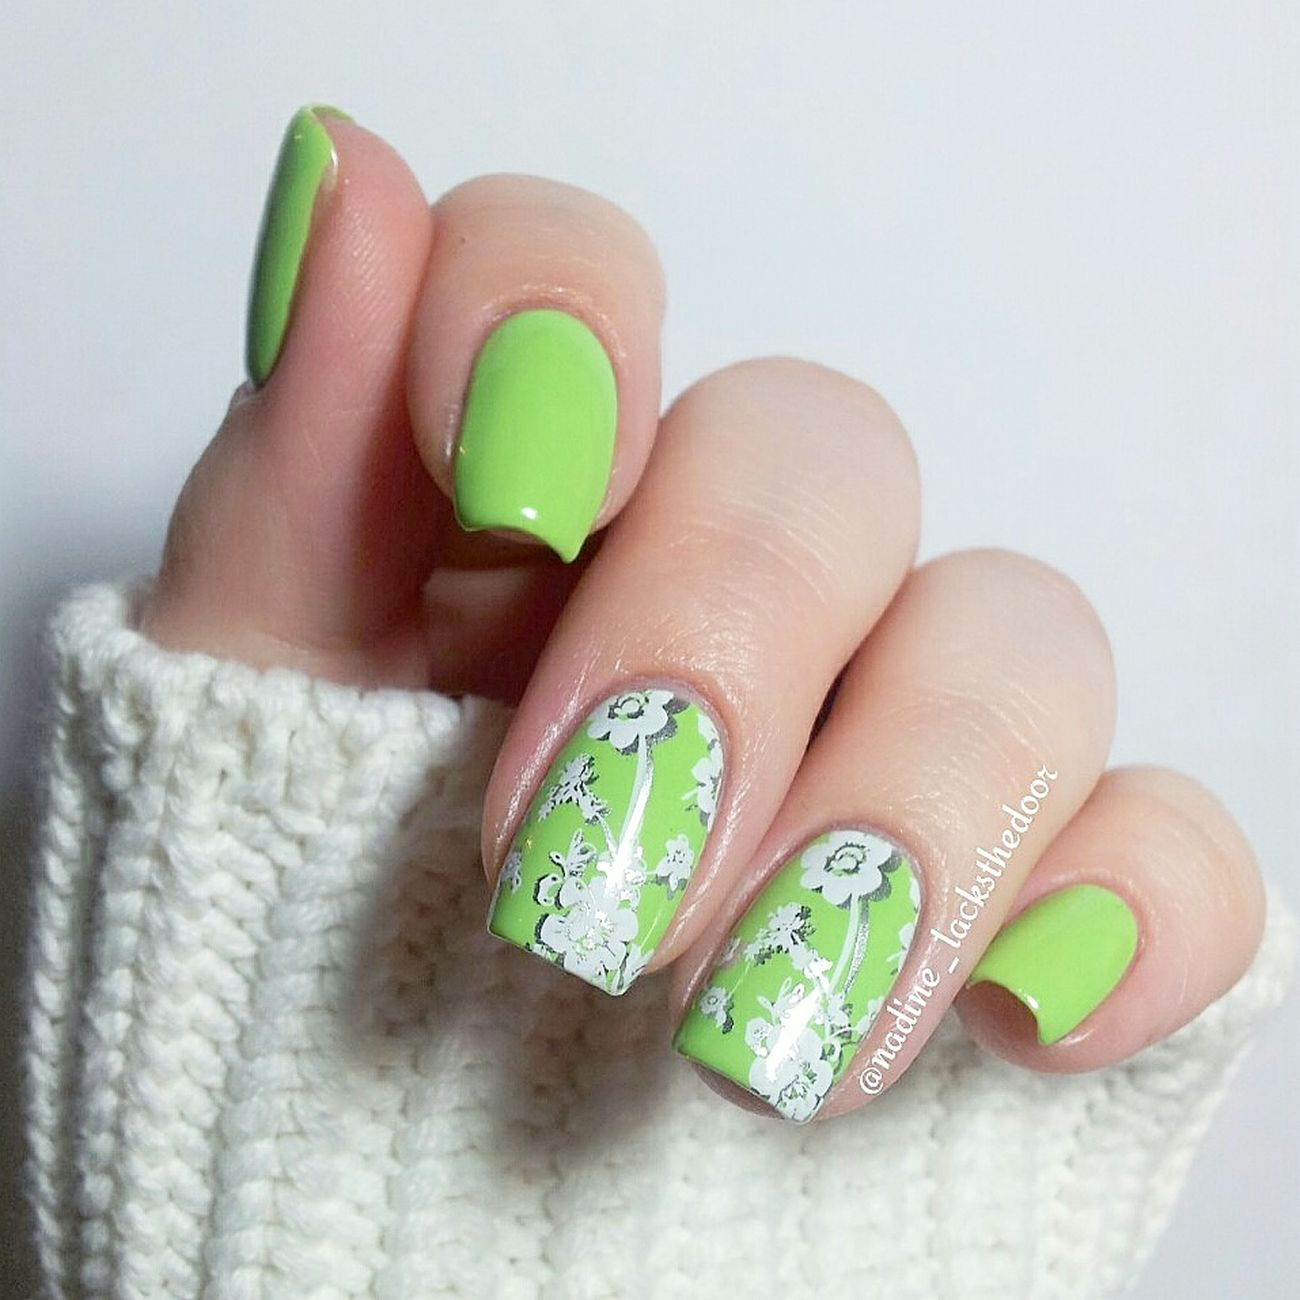 Essie Essievibrantvibes Moyou Moyouproxl12 Essienoplacelikechrome Essence Doublestamping